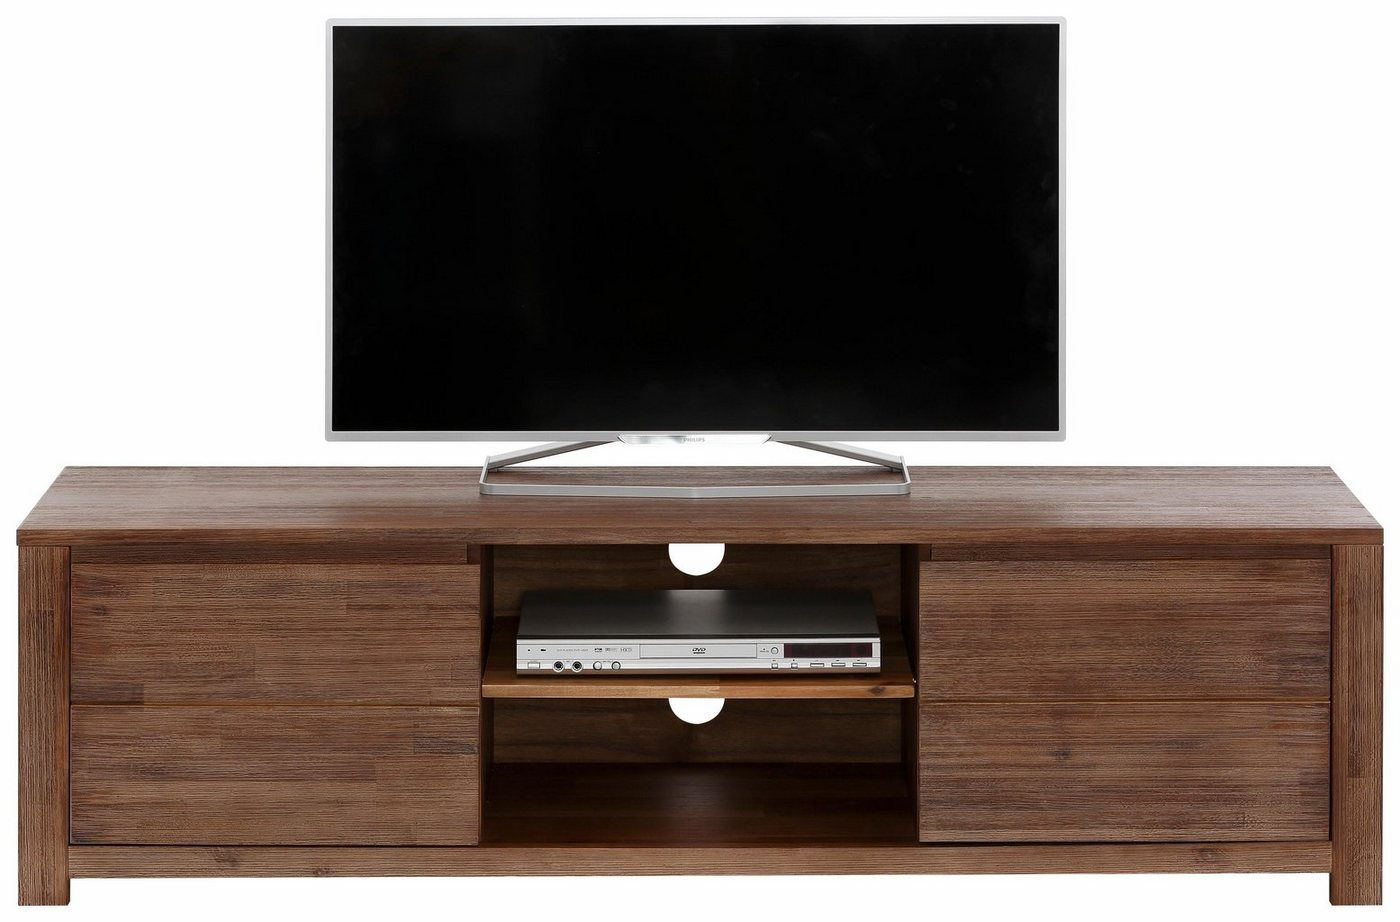 Home affaire TV-meubel 'Wally', breedte: 160 cm